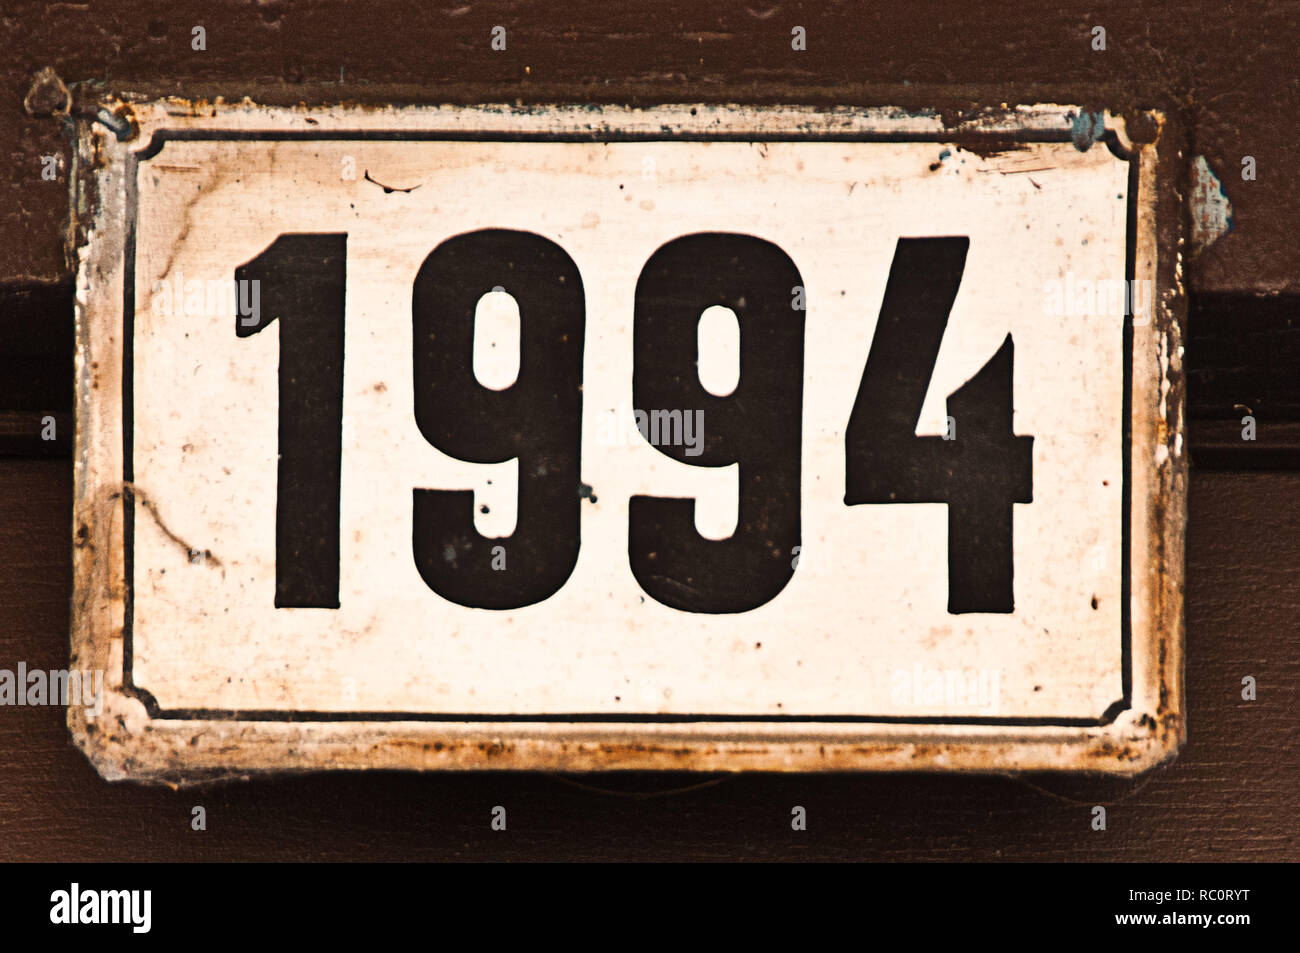 Year 1994 Concept High Resolution Stock Photography and Images - Alamy